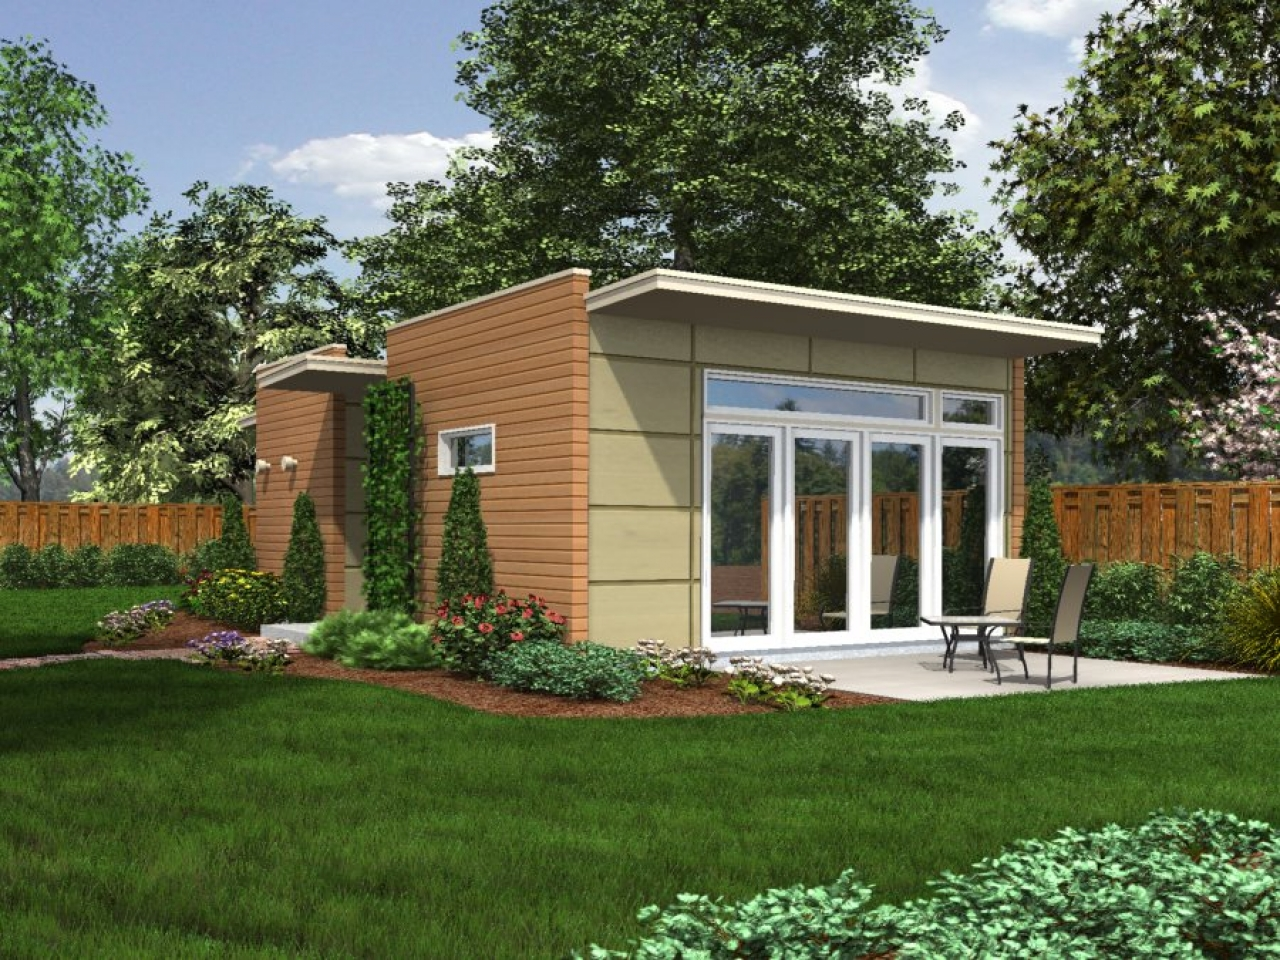 Prefab backyard cottage backyard cottage small houses for Prefab garden house